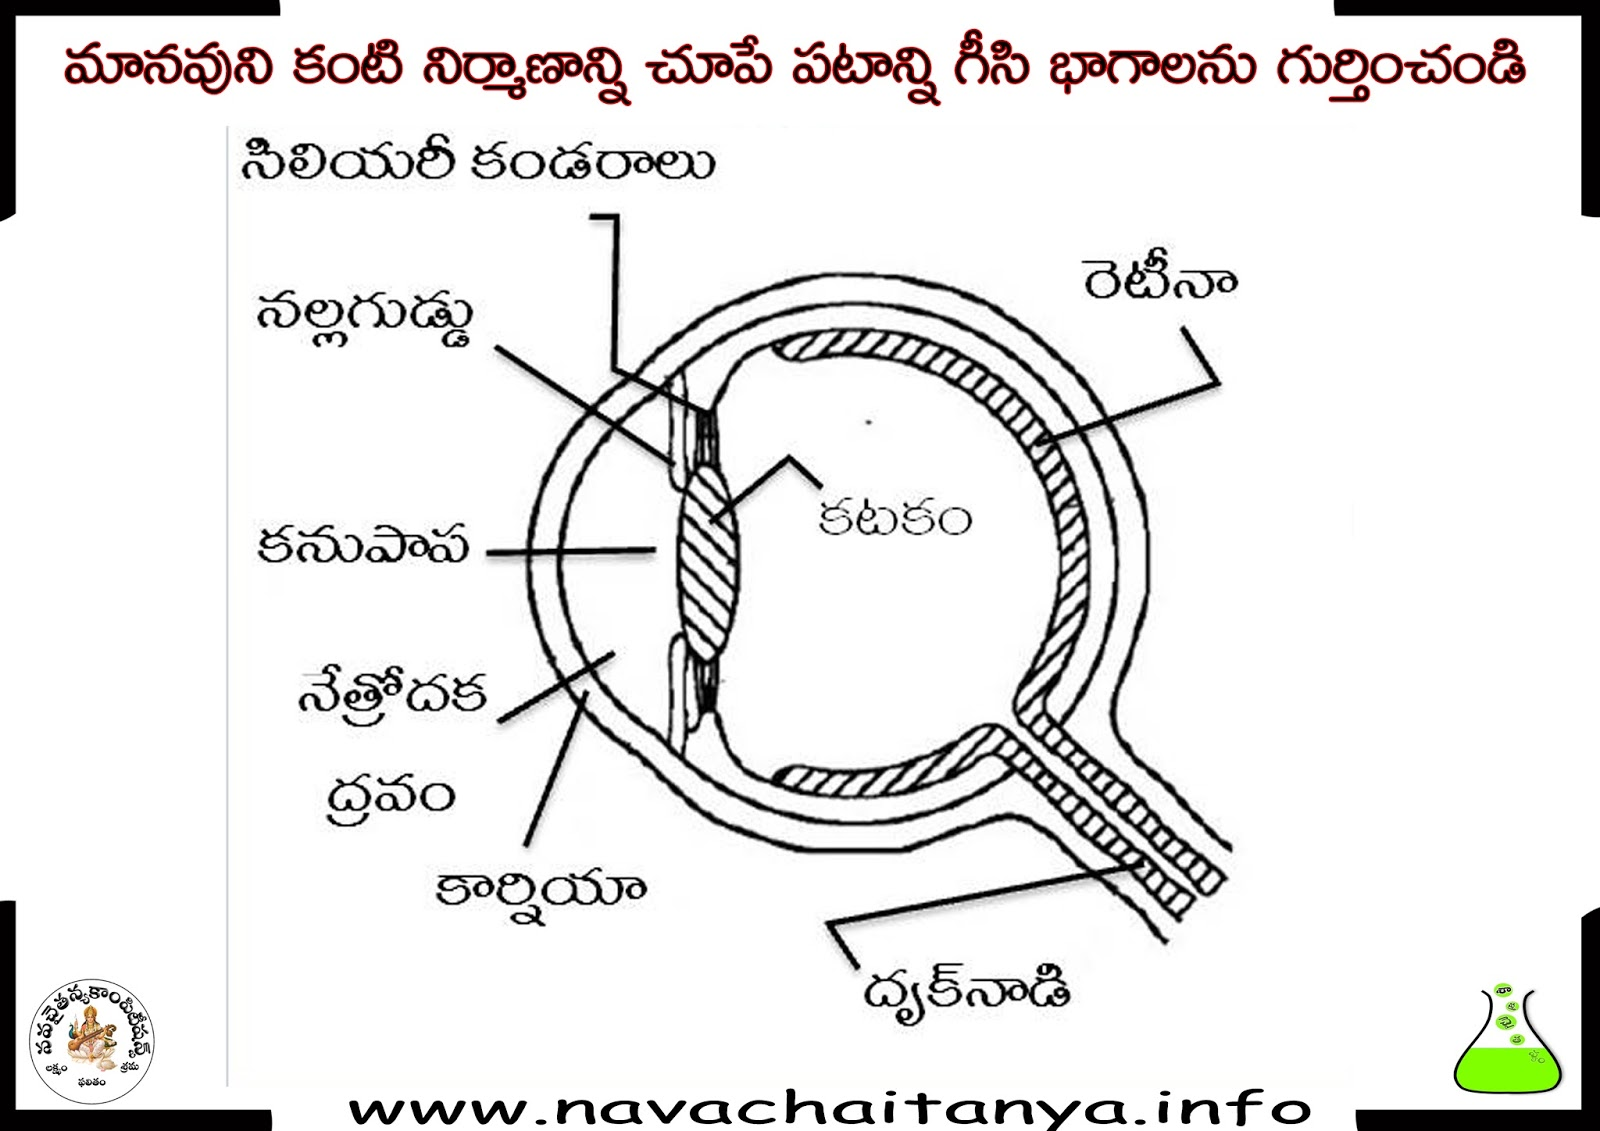 Science Diagrams For Class 8 Code Alarm Installation Manual Wiring Diagram 10th Physical మనవన కట